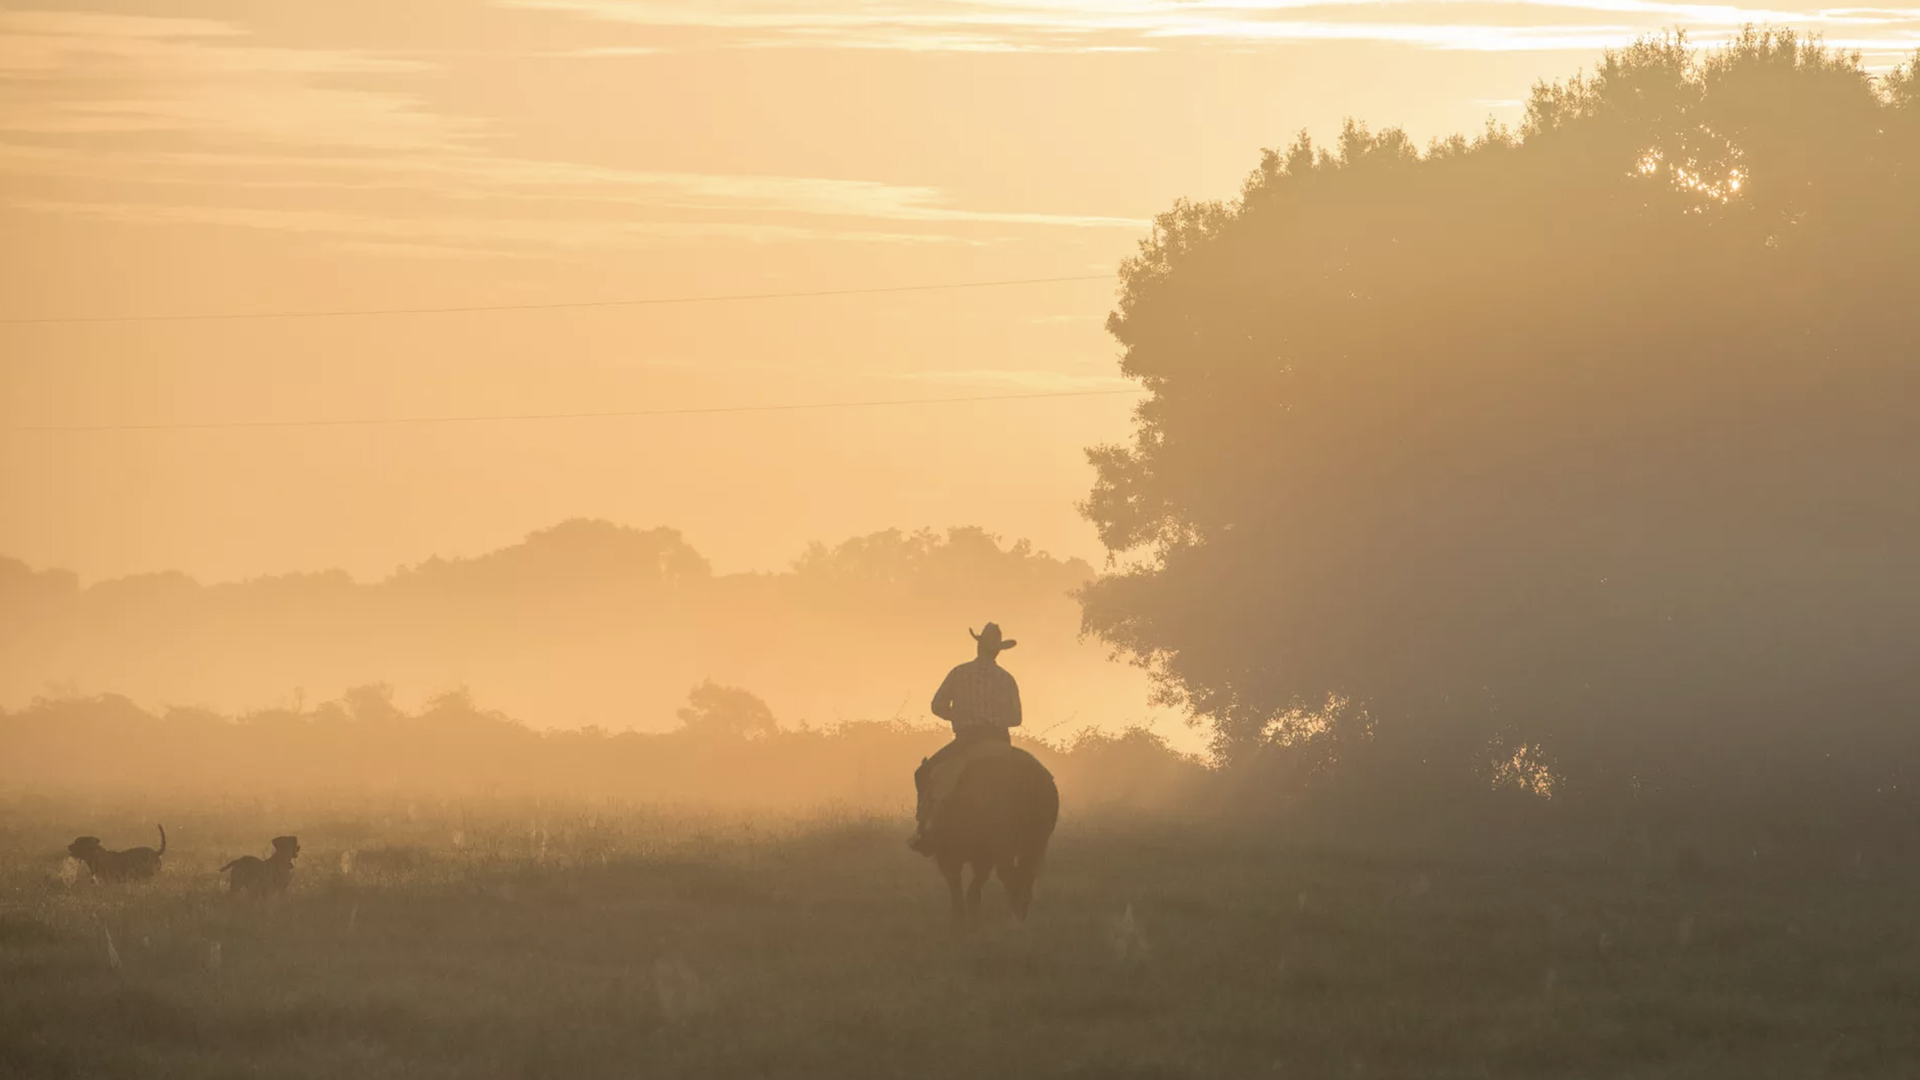 Photo of a man in a cowboy hat riding a horse in the sunrise.